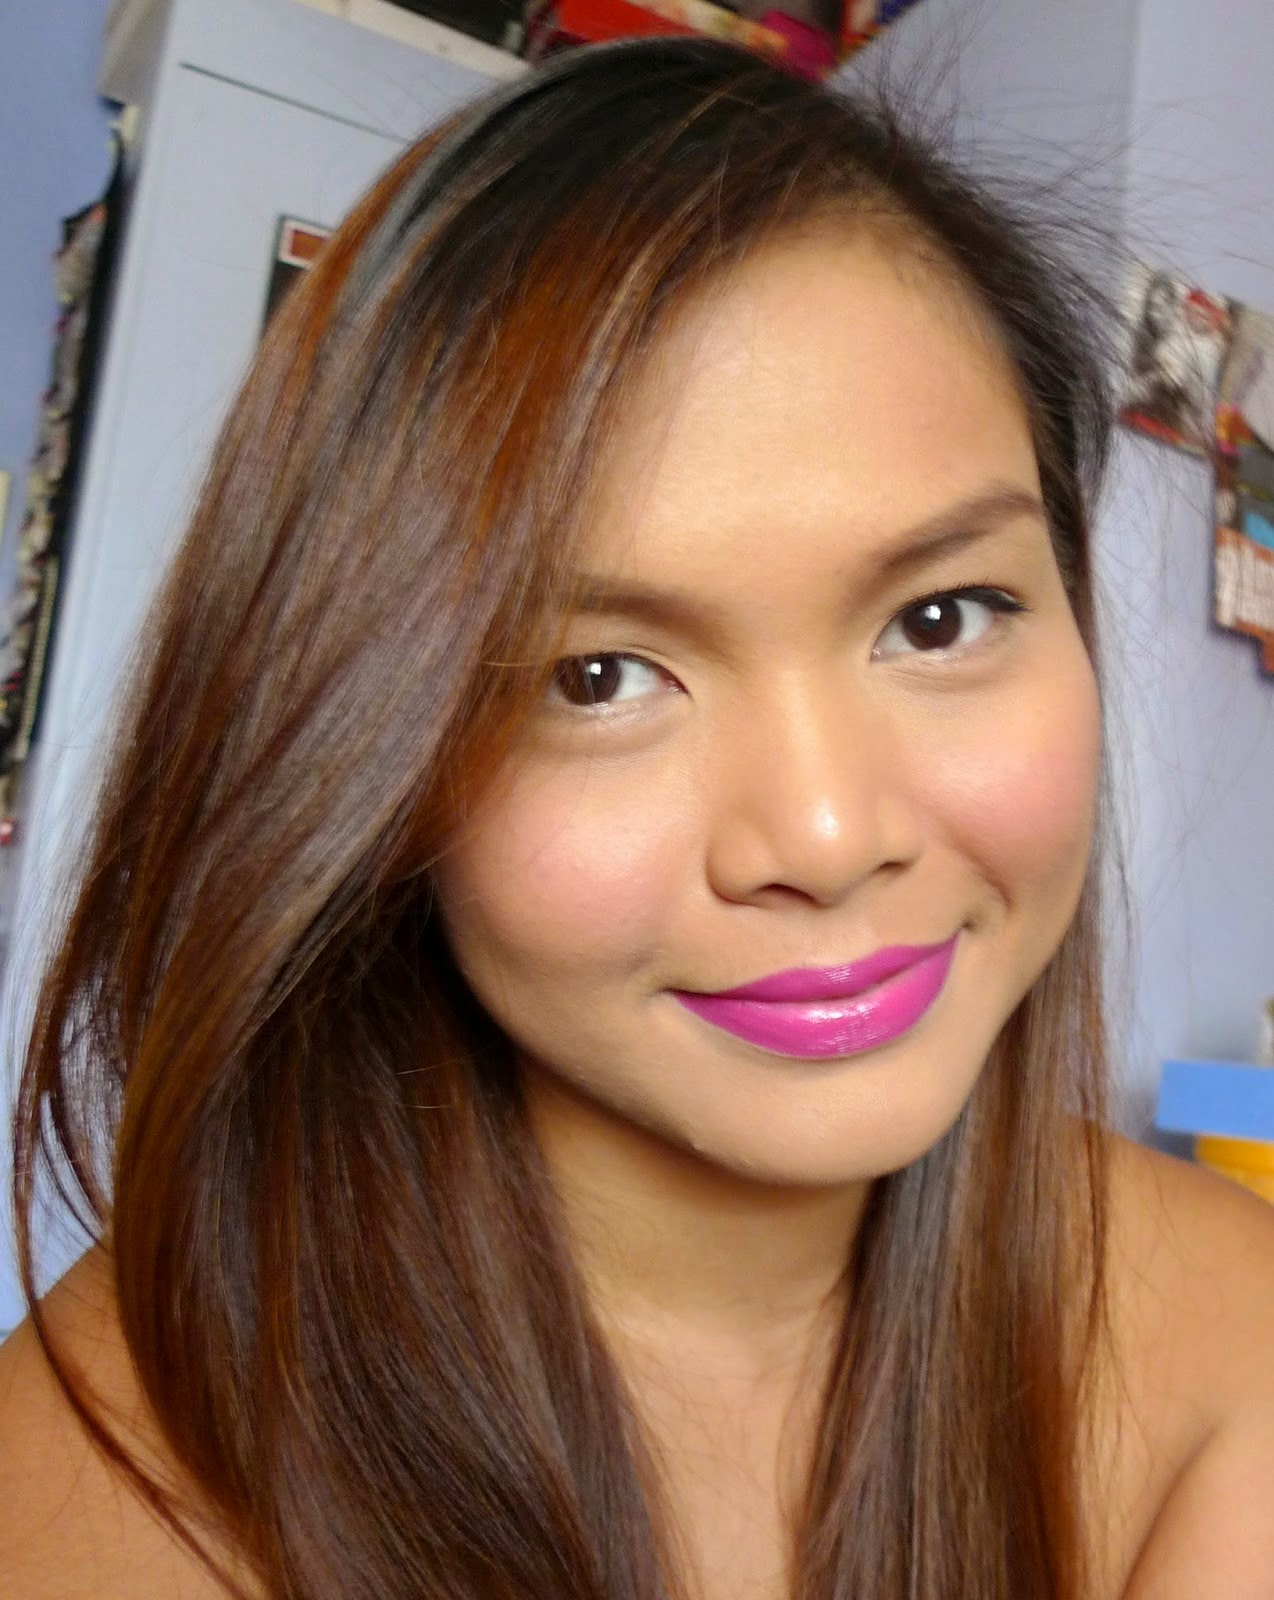 Mac Look In A Box 2016 Summer Collection: FAN MAIL FRIDAYS: My 10 All- Time Favorite MAC Lipsticks